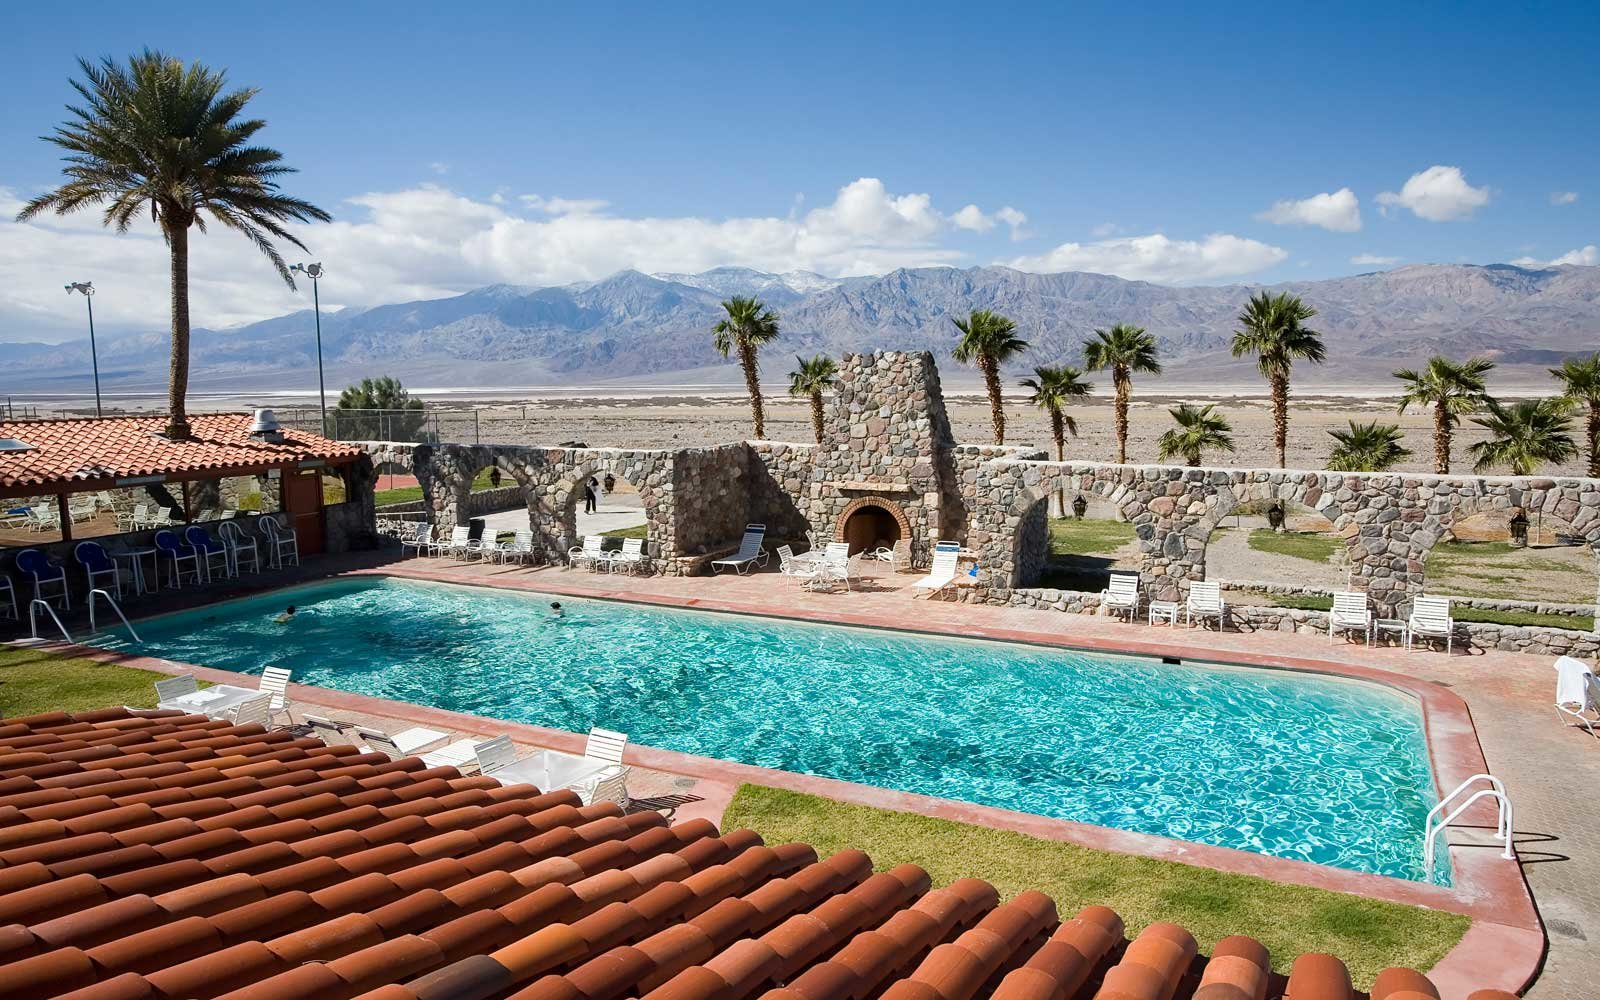 Oasis Resort in Death Valley